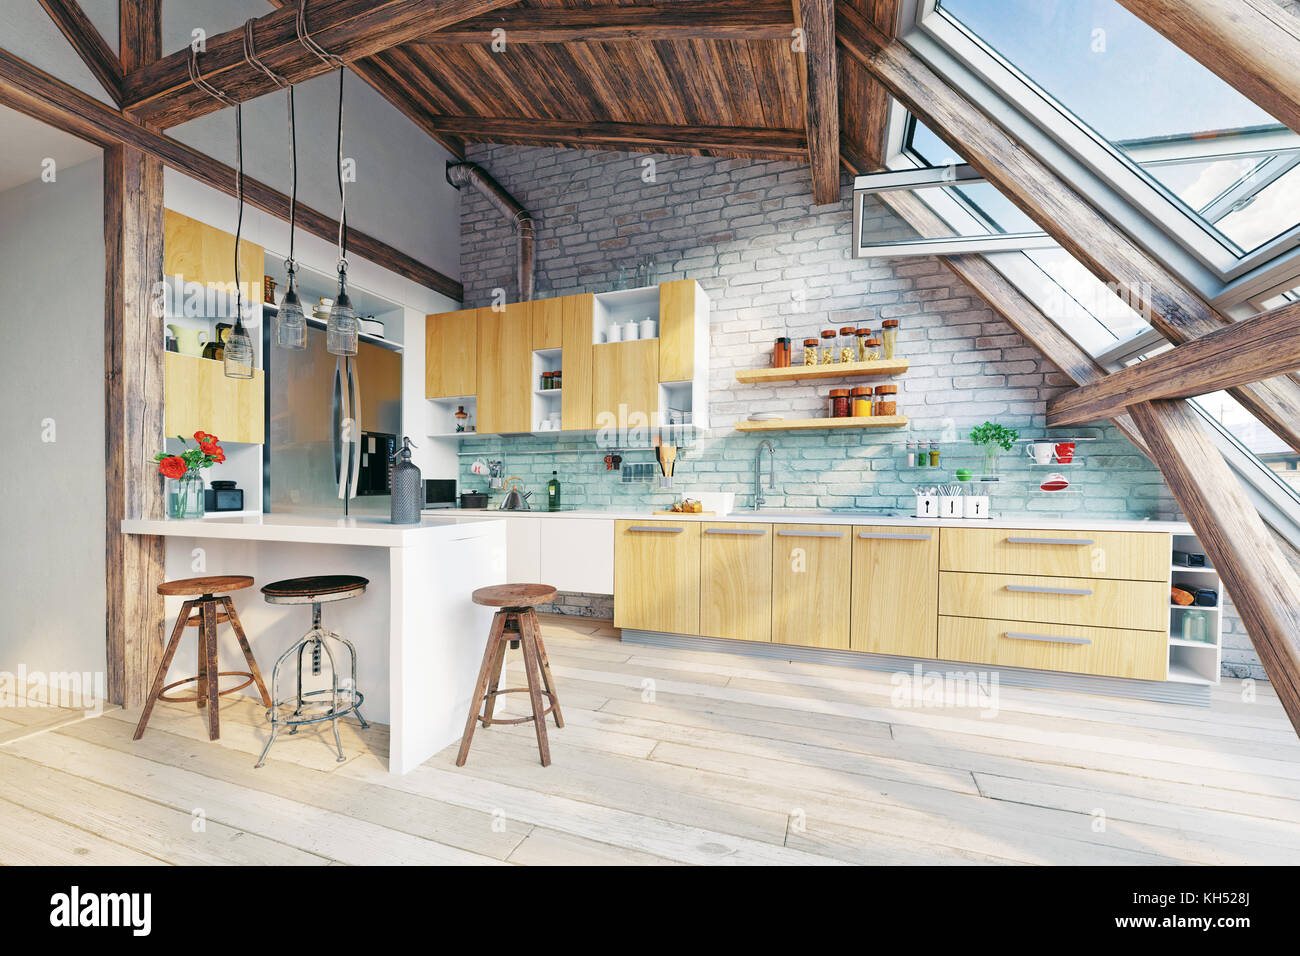 modern attic kitchen  interior. 3d rendering concept - Stock Image